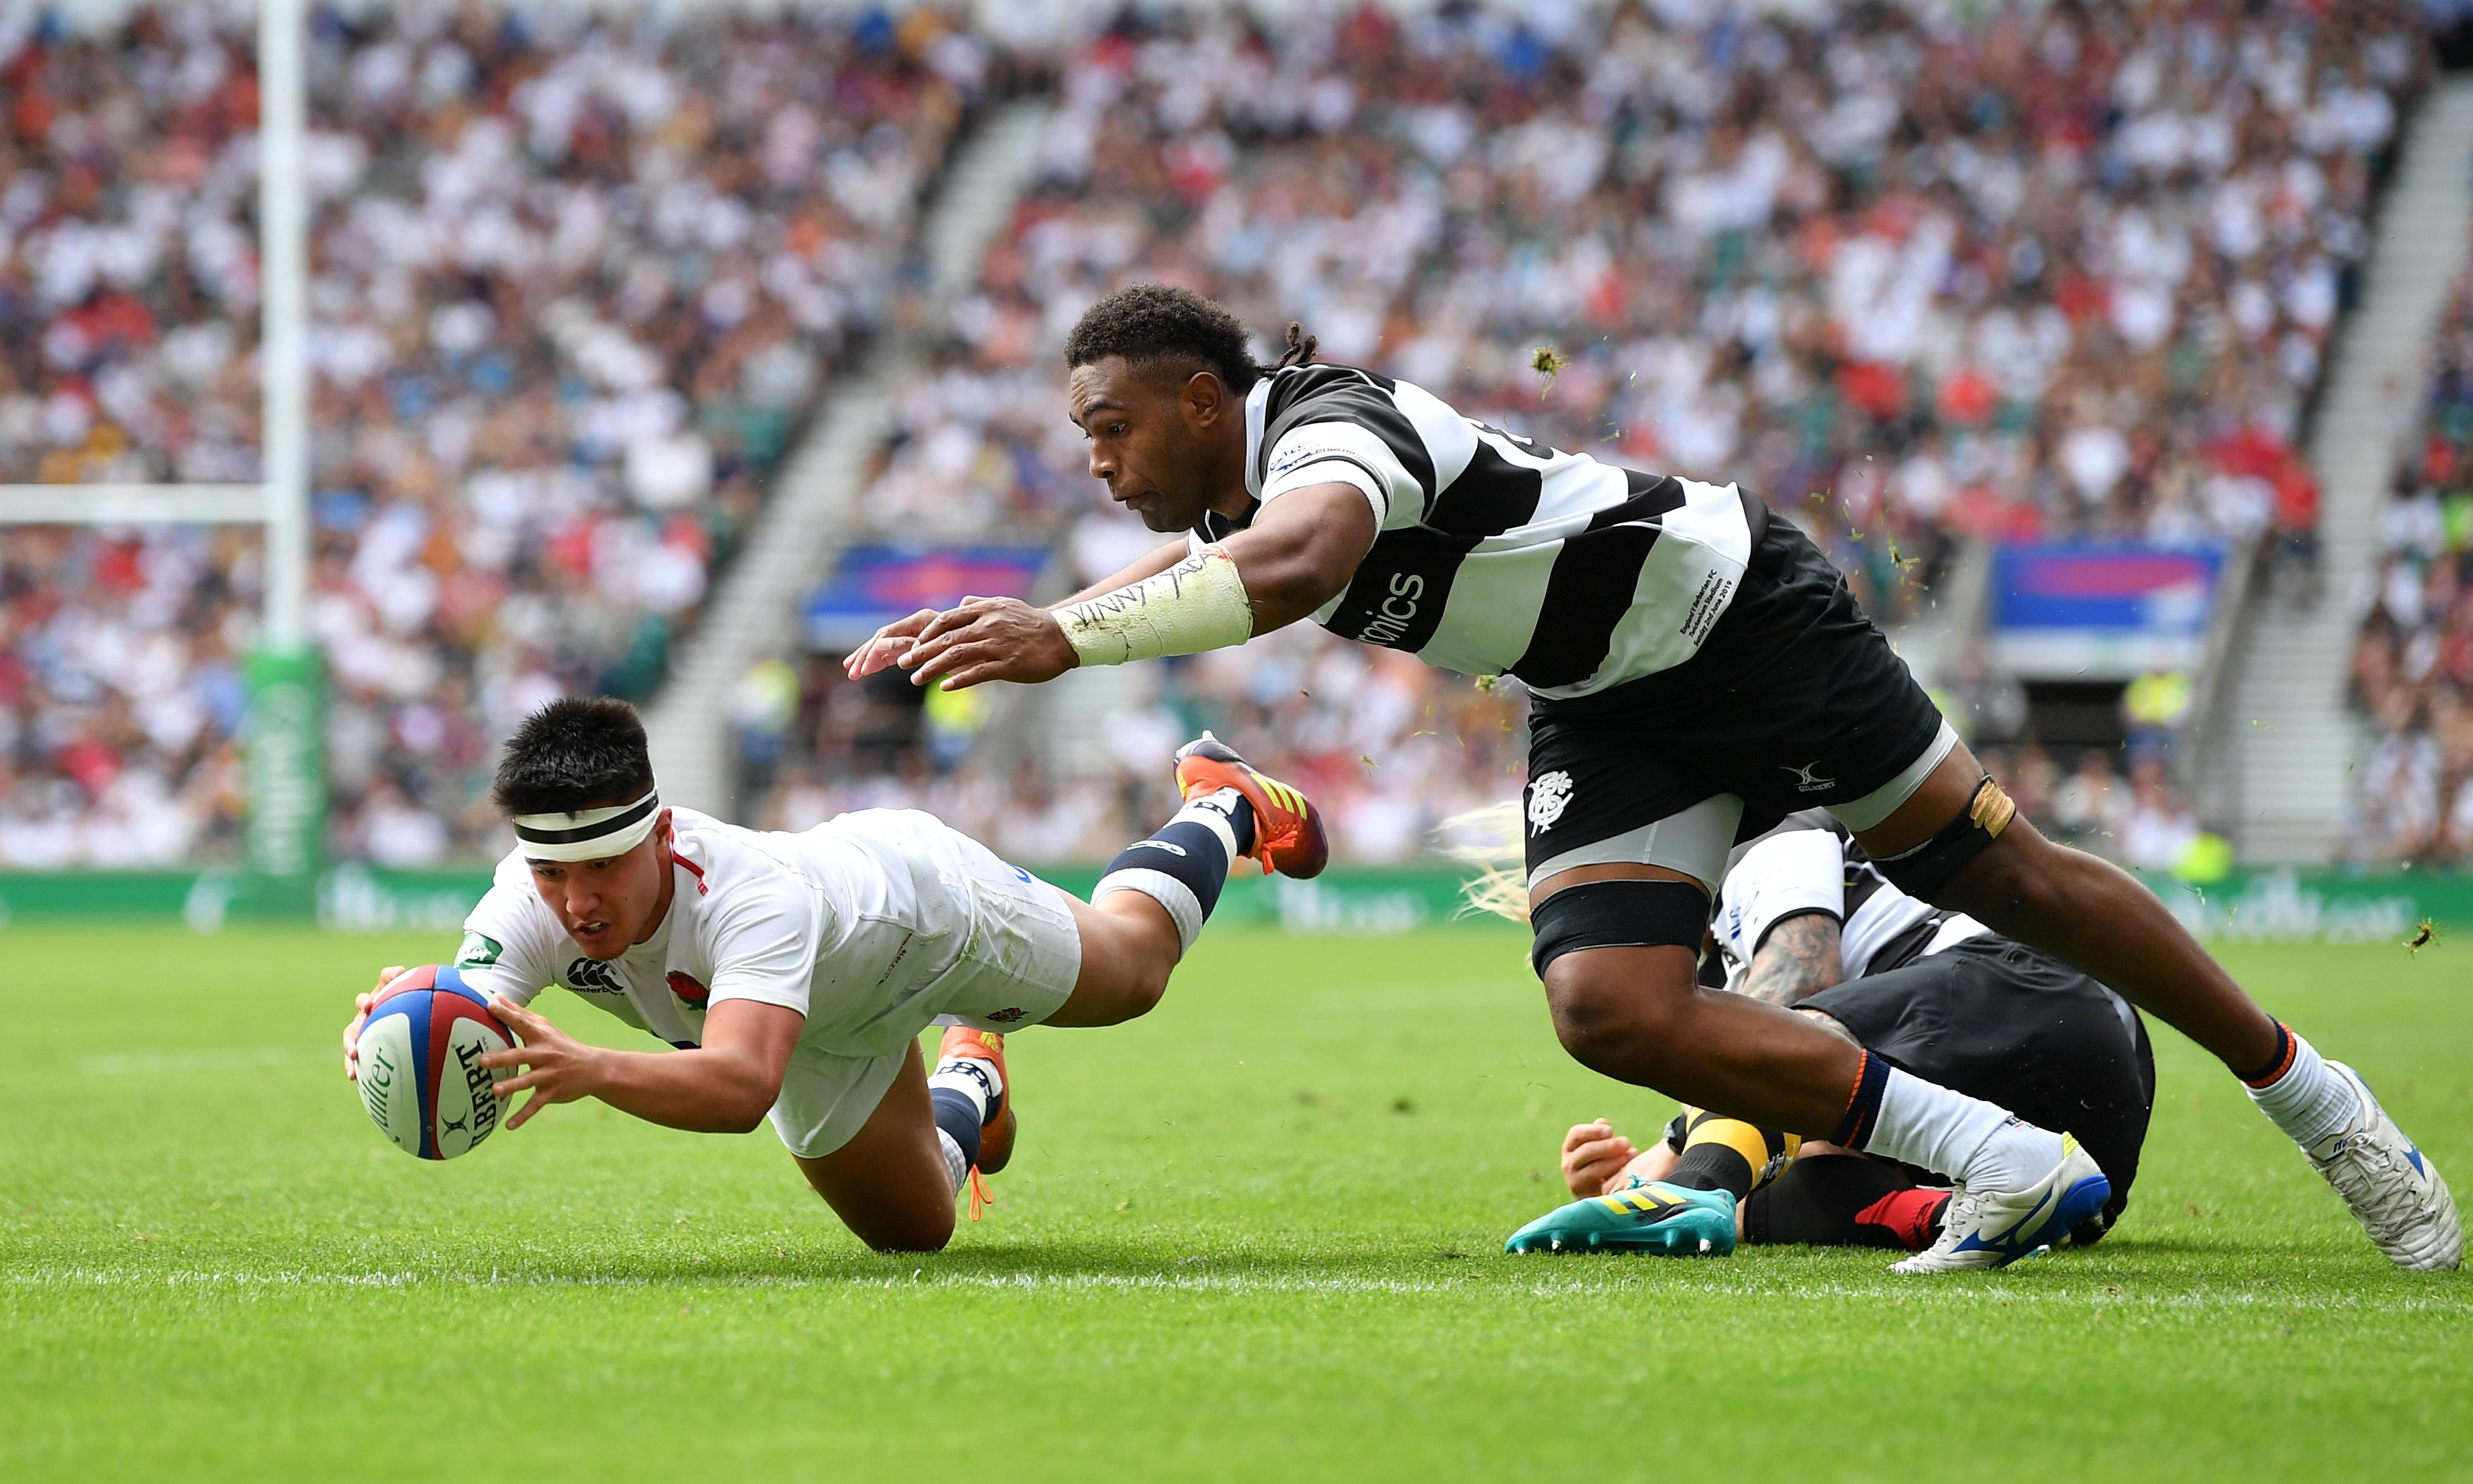 England young guns Dombrandt and Smith shine in defeat of Barbarians